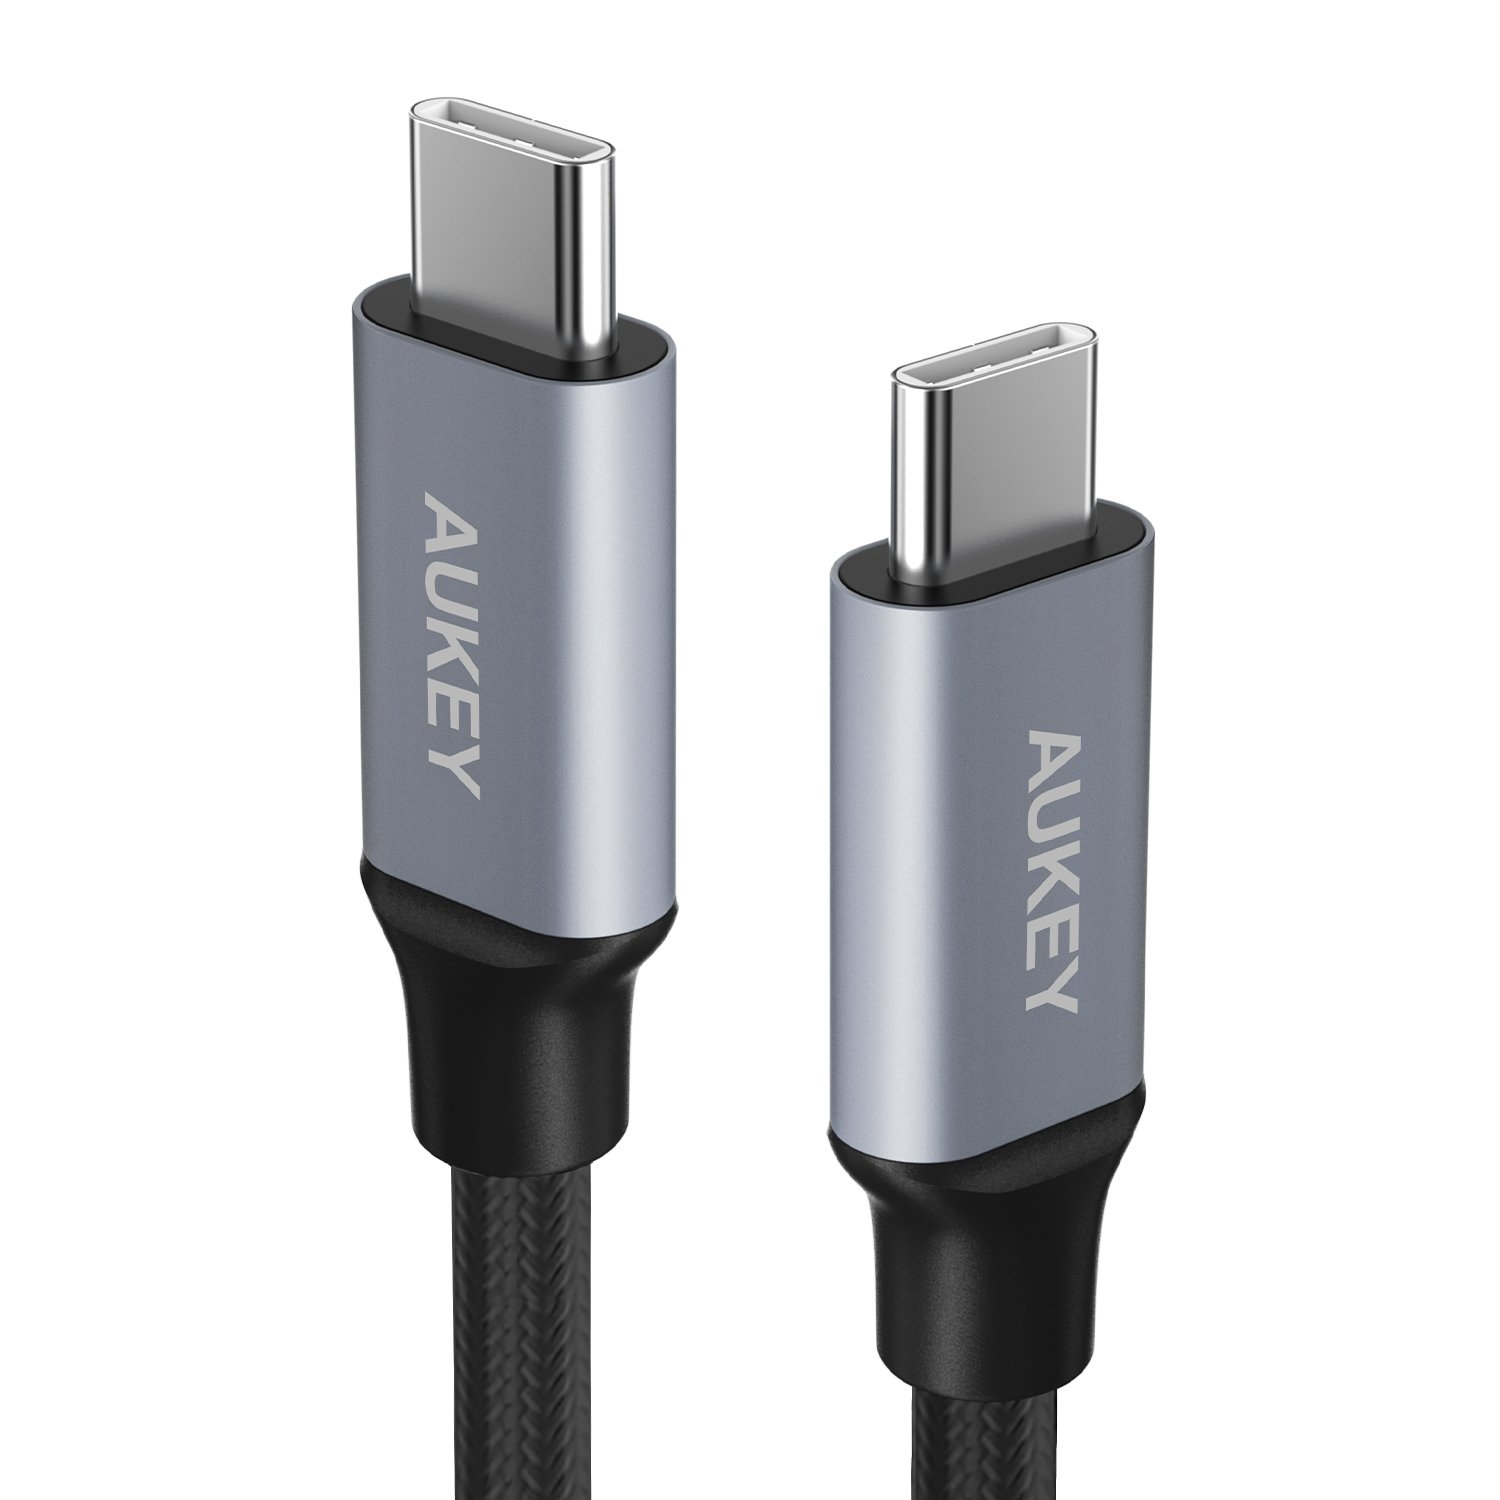 AUKEY USB C to USB C Cable 3ft